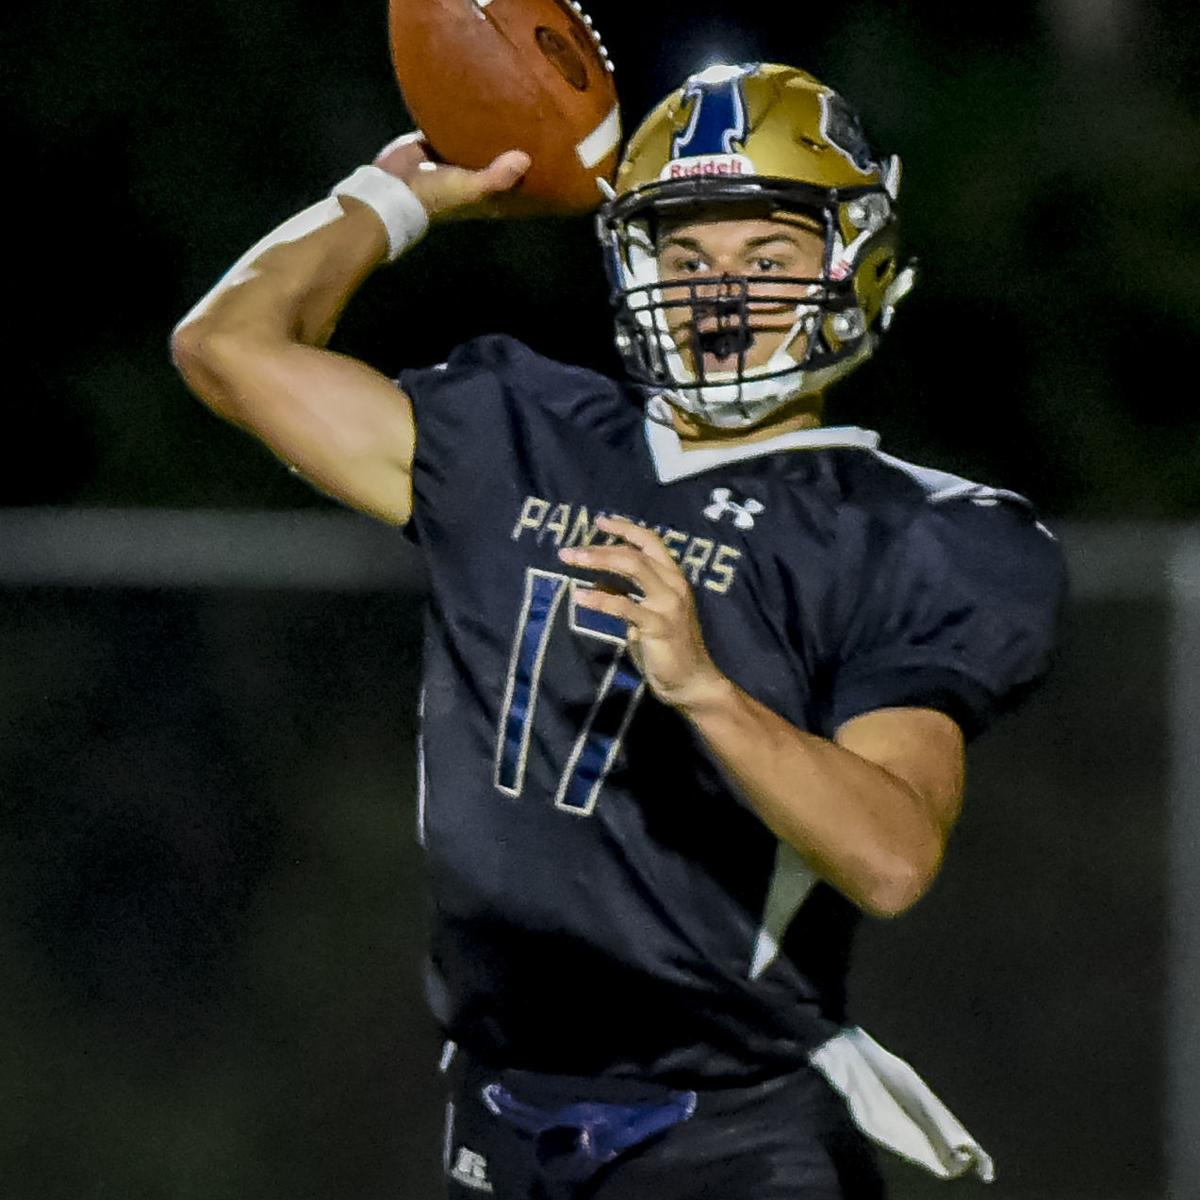 Panthers come from behind to sink Mariners, advance to state quarterfinals